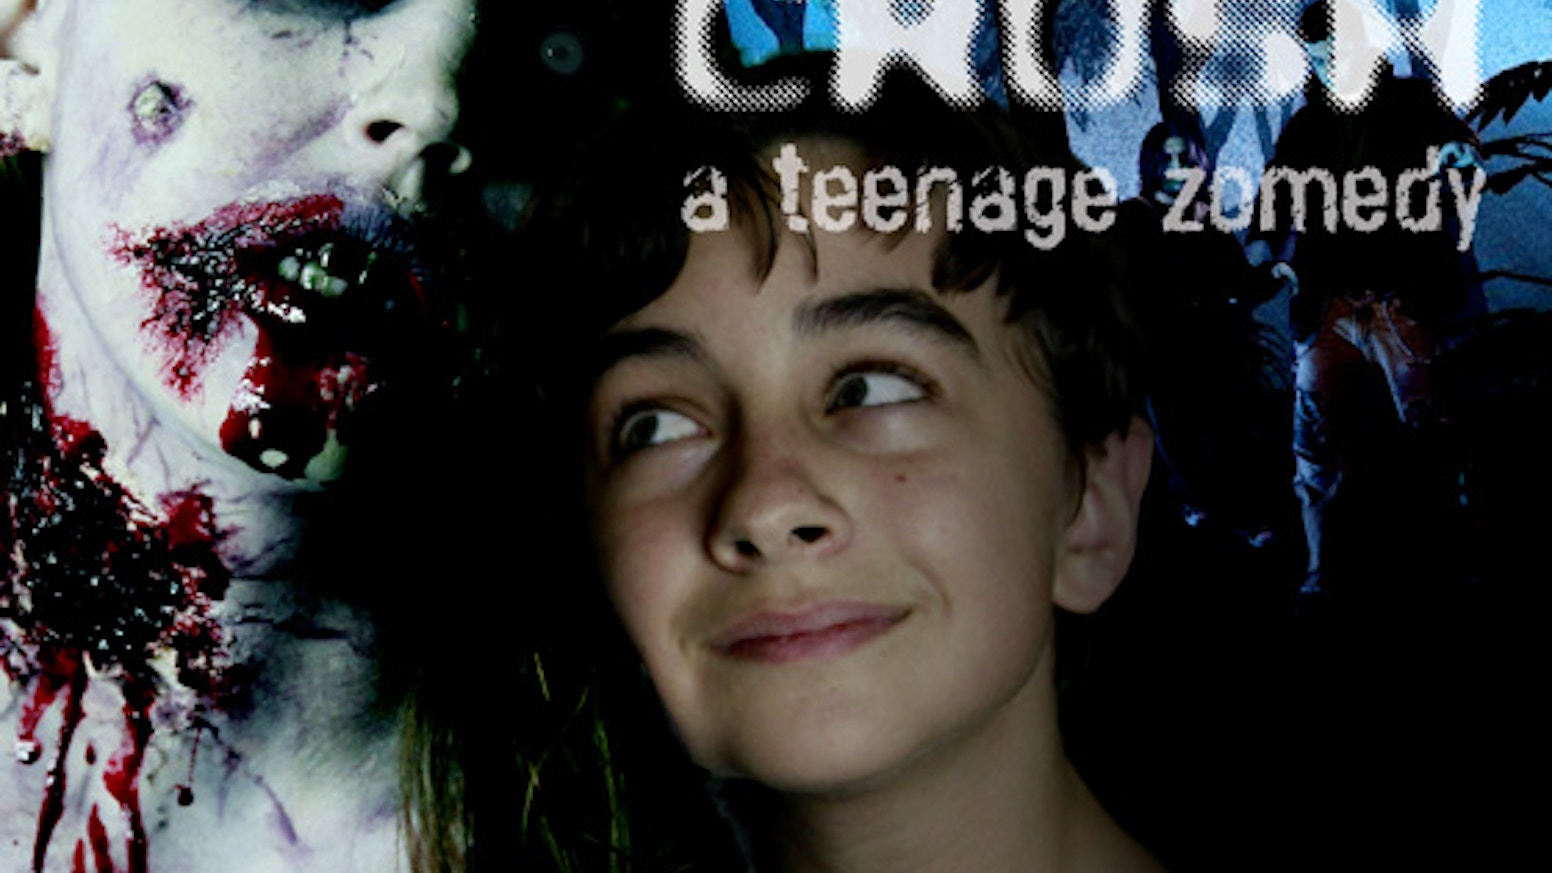 Zombie Crush: A Teenage Zomedy by Lawayne Bontrager